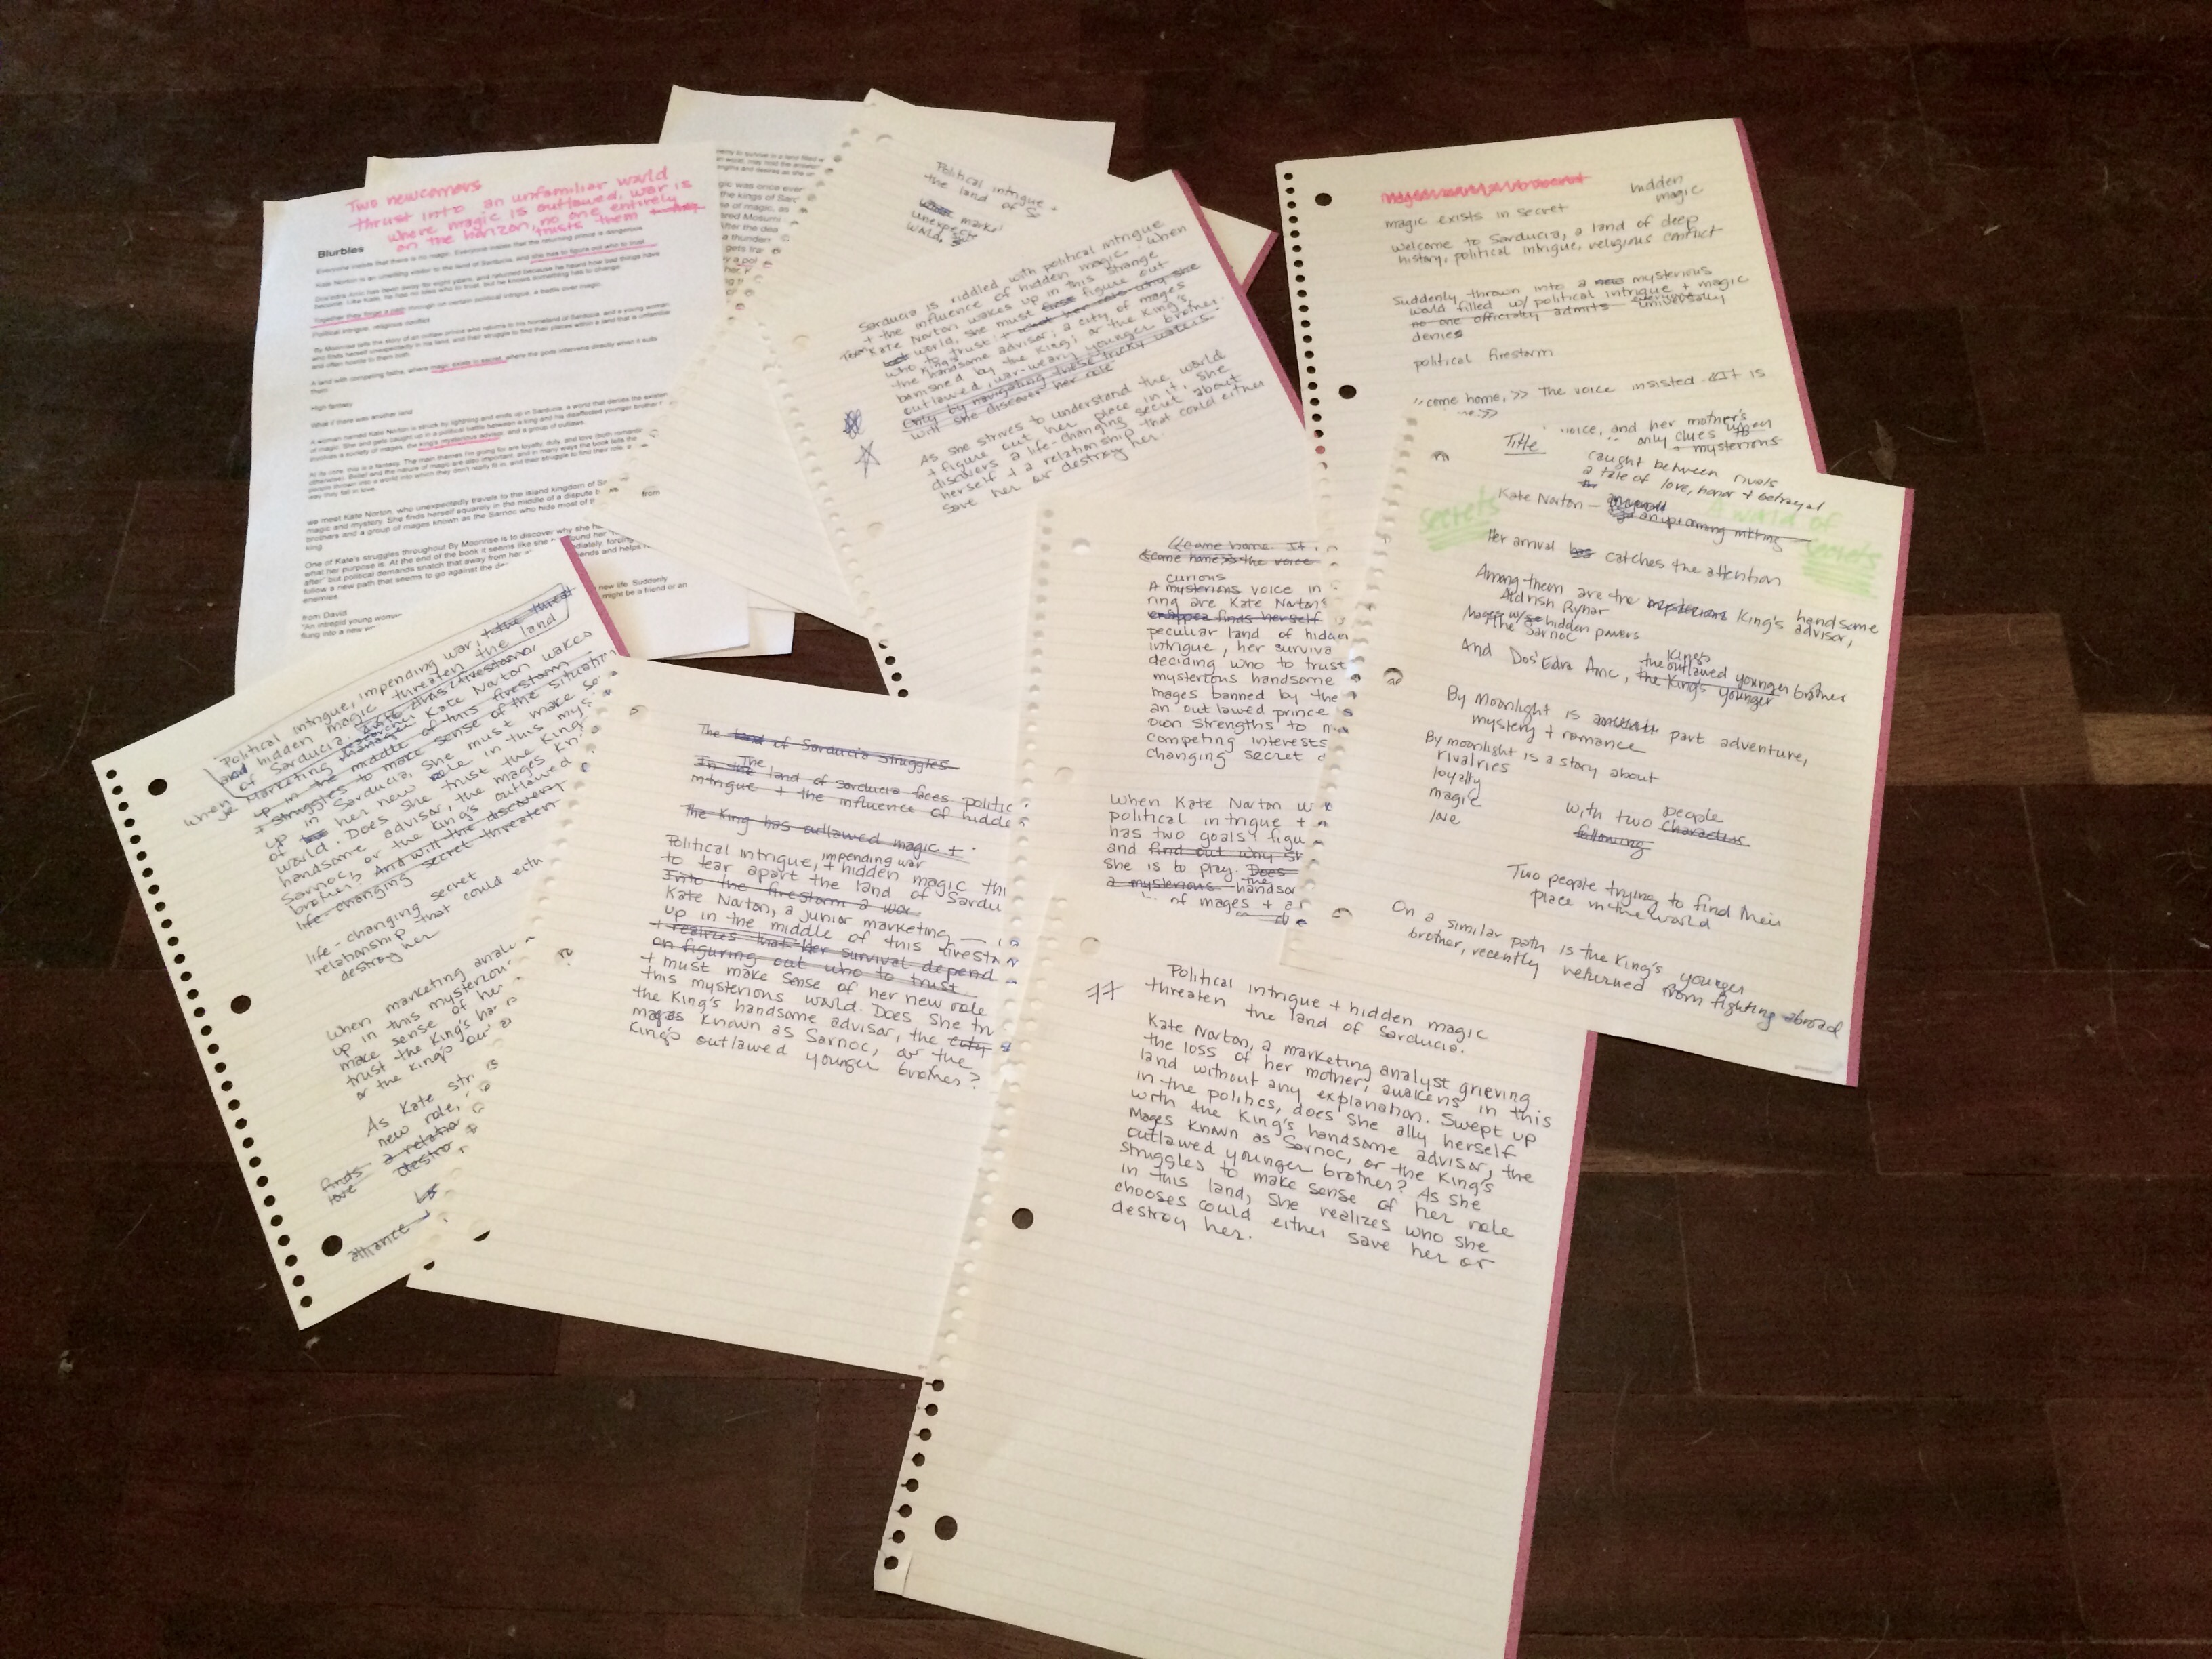 handwritten drafts